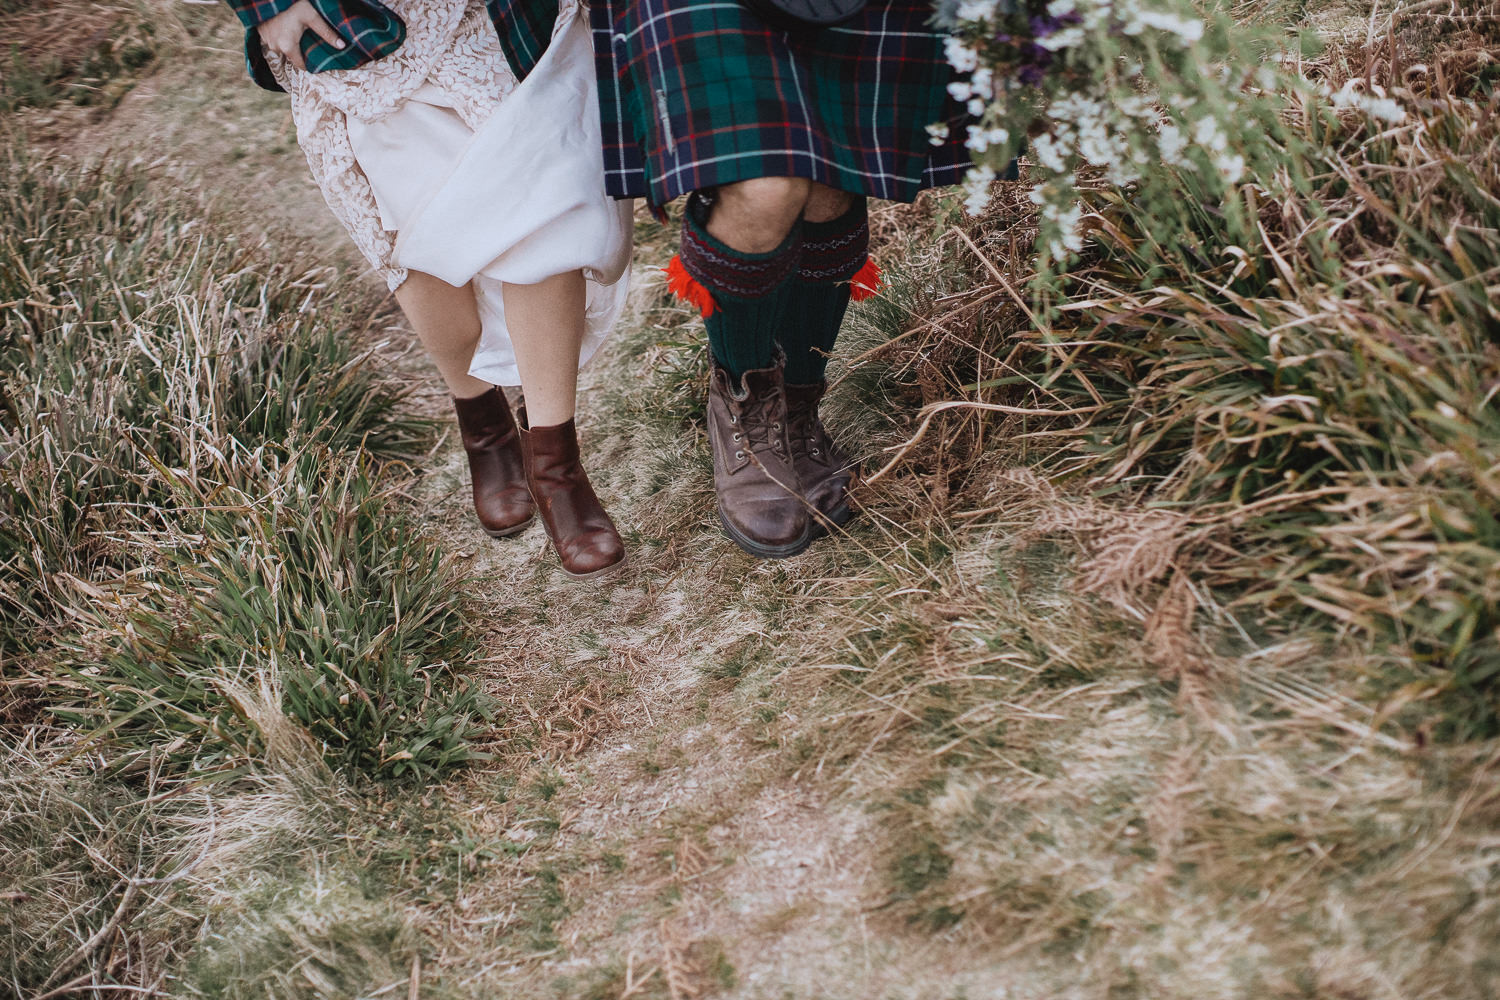 Scottish Wedding Photographer, Scottish Wedding Photographer, Highlands Wedding, Scotland Wedding, Scotland Elopement, Highlands wedding venues, Inverness, romantic photos, intimate photos, Northern wedding photographer, wedding, elopment, engagement session, pre-wedding session, engagement ideas, surprise engagement, mountain wedding photos, 2020 wedding ideas, places to get married, north wales wedding photographer, cheshire wedding, cheshire wedding photographer, natural wedding photos